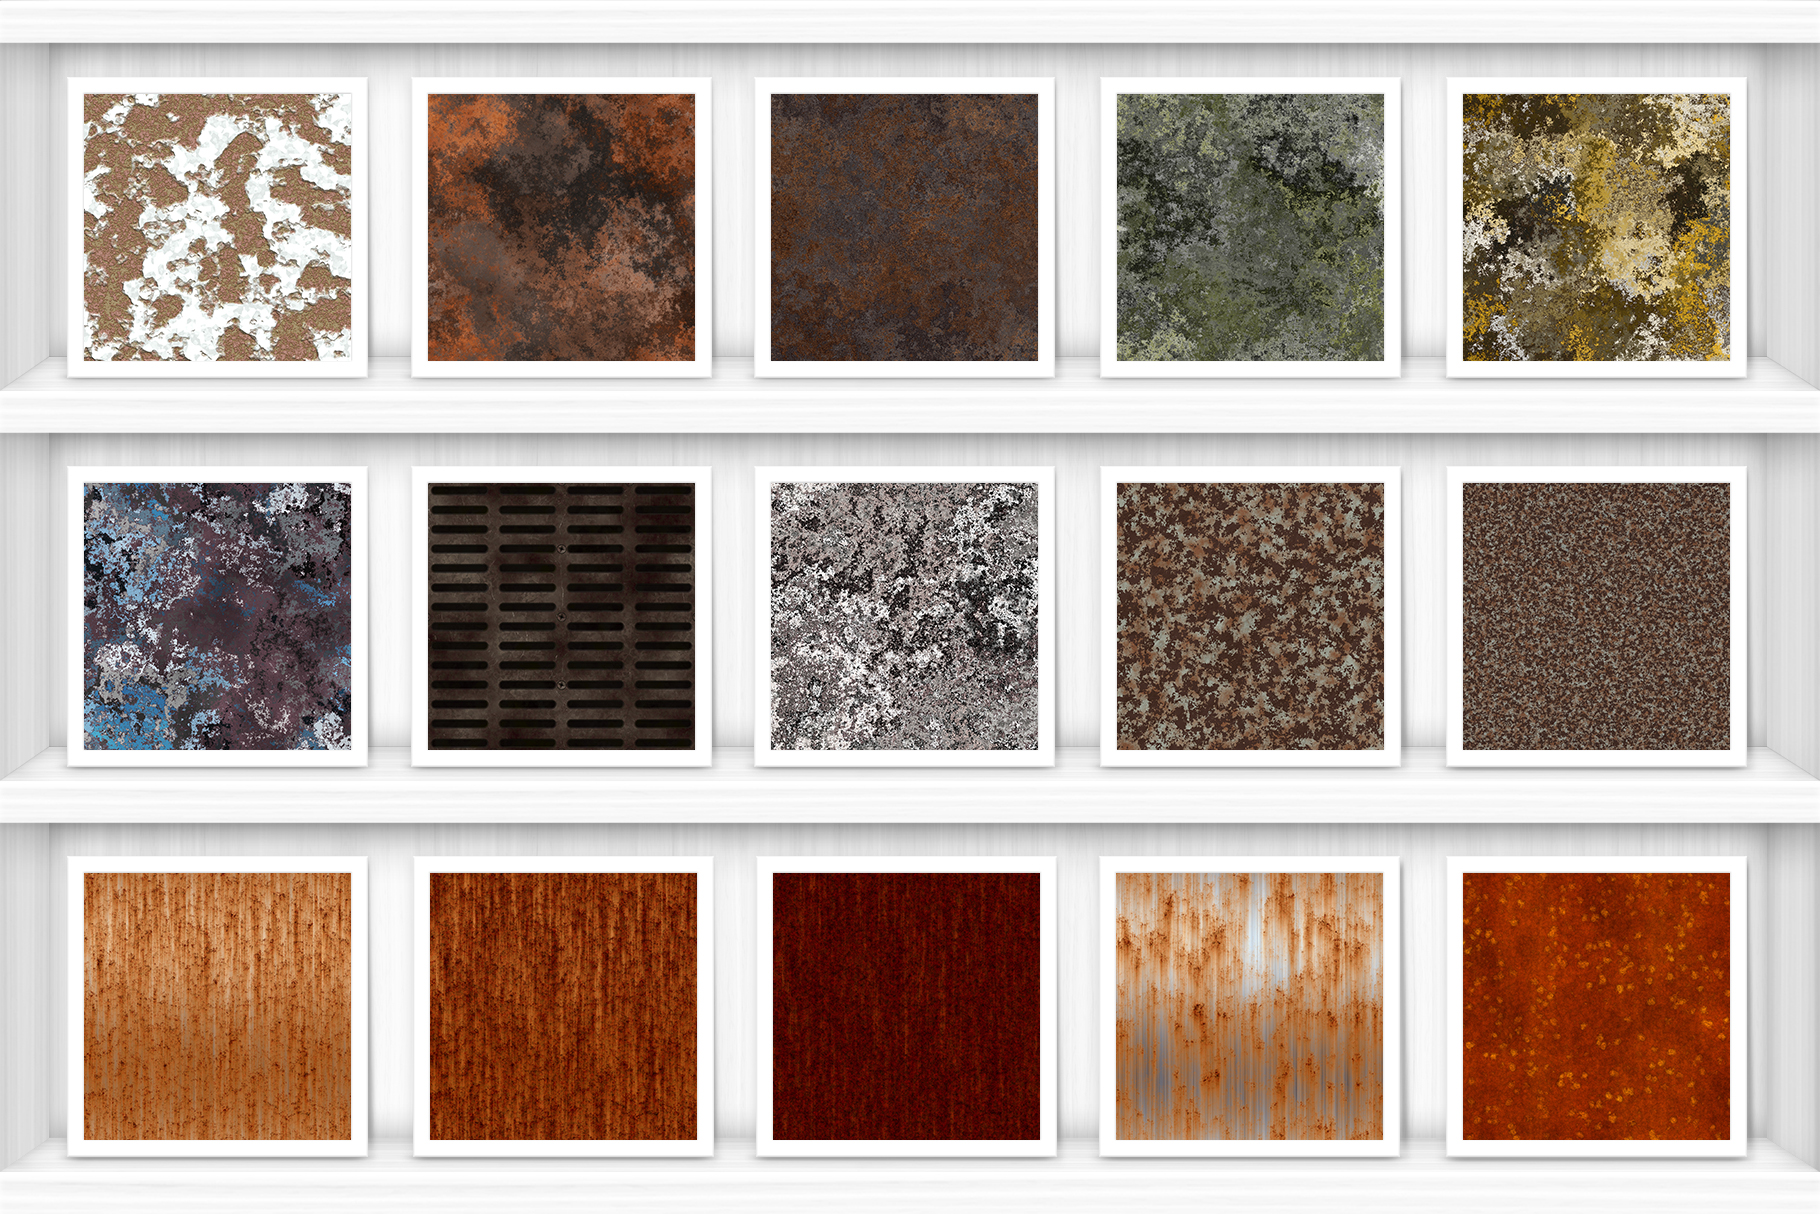 50 Rust Background Textures Preview Set 1